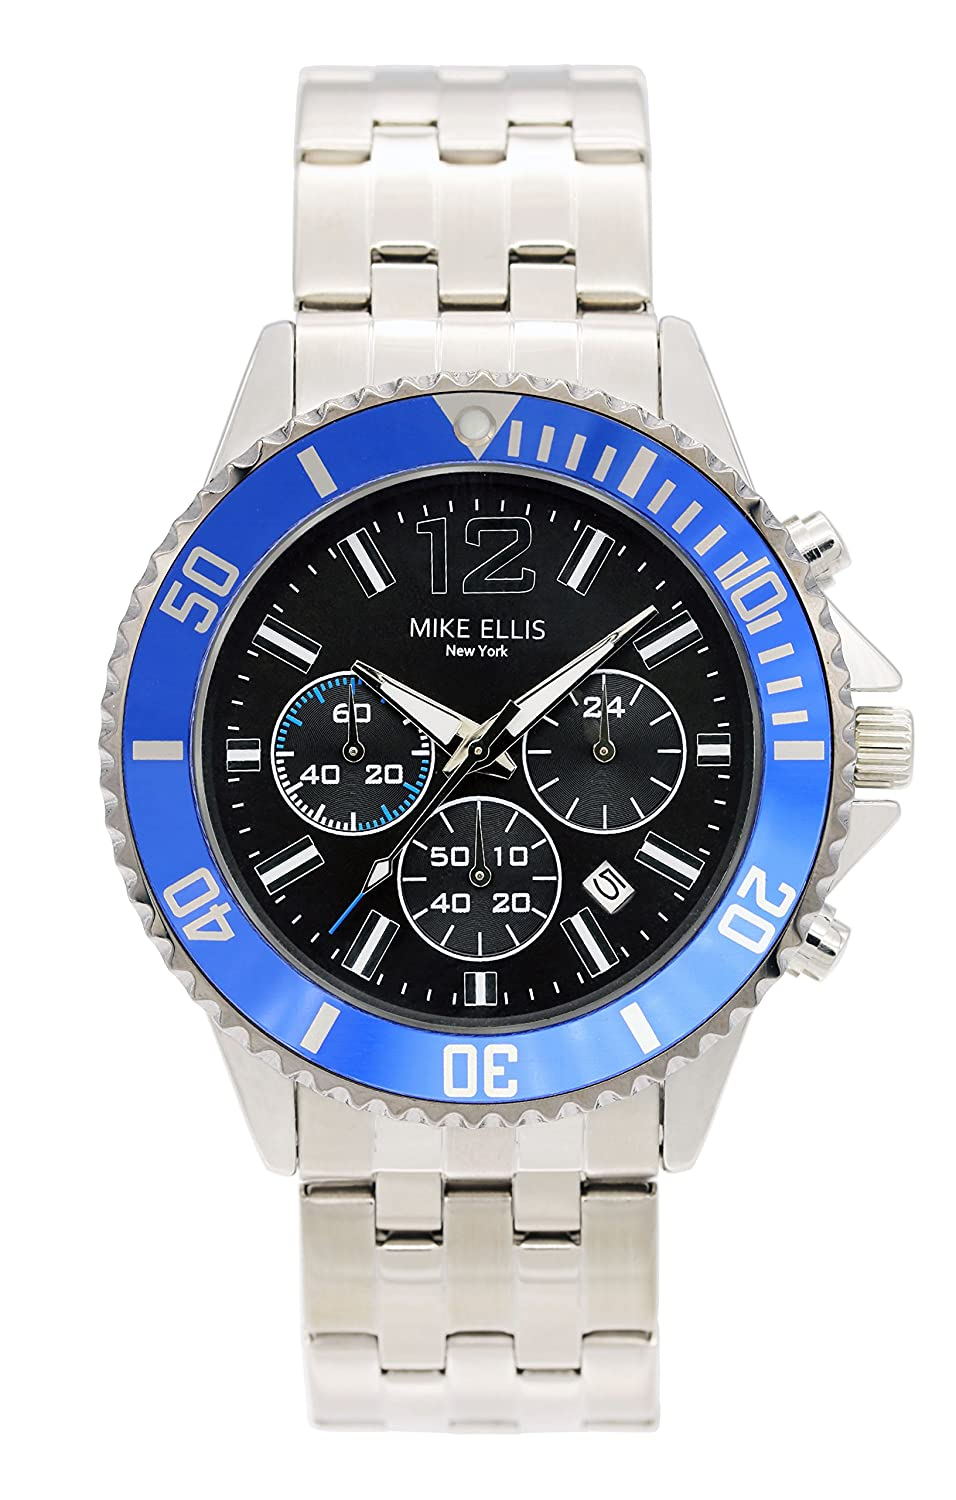 Mike Ellis New York Herren-Armbanduhr RaceTime Analog Quarz Edelstahl SM2907A